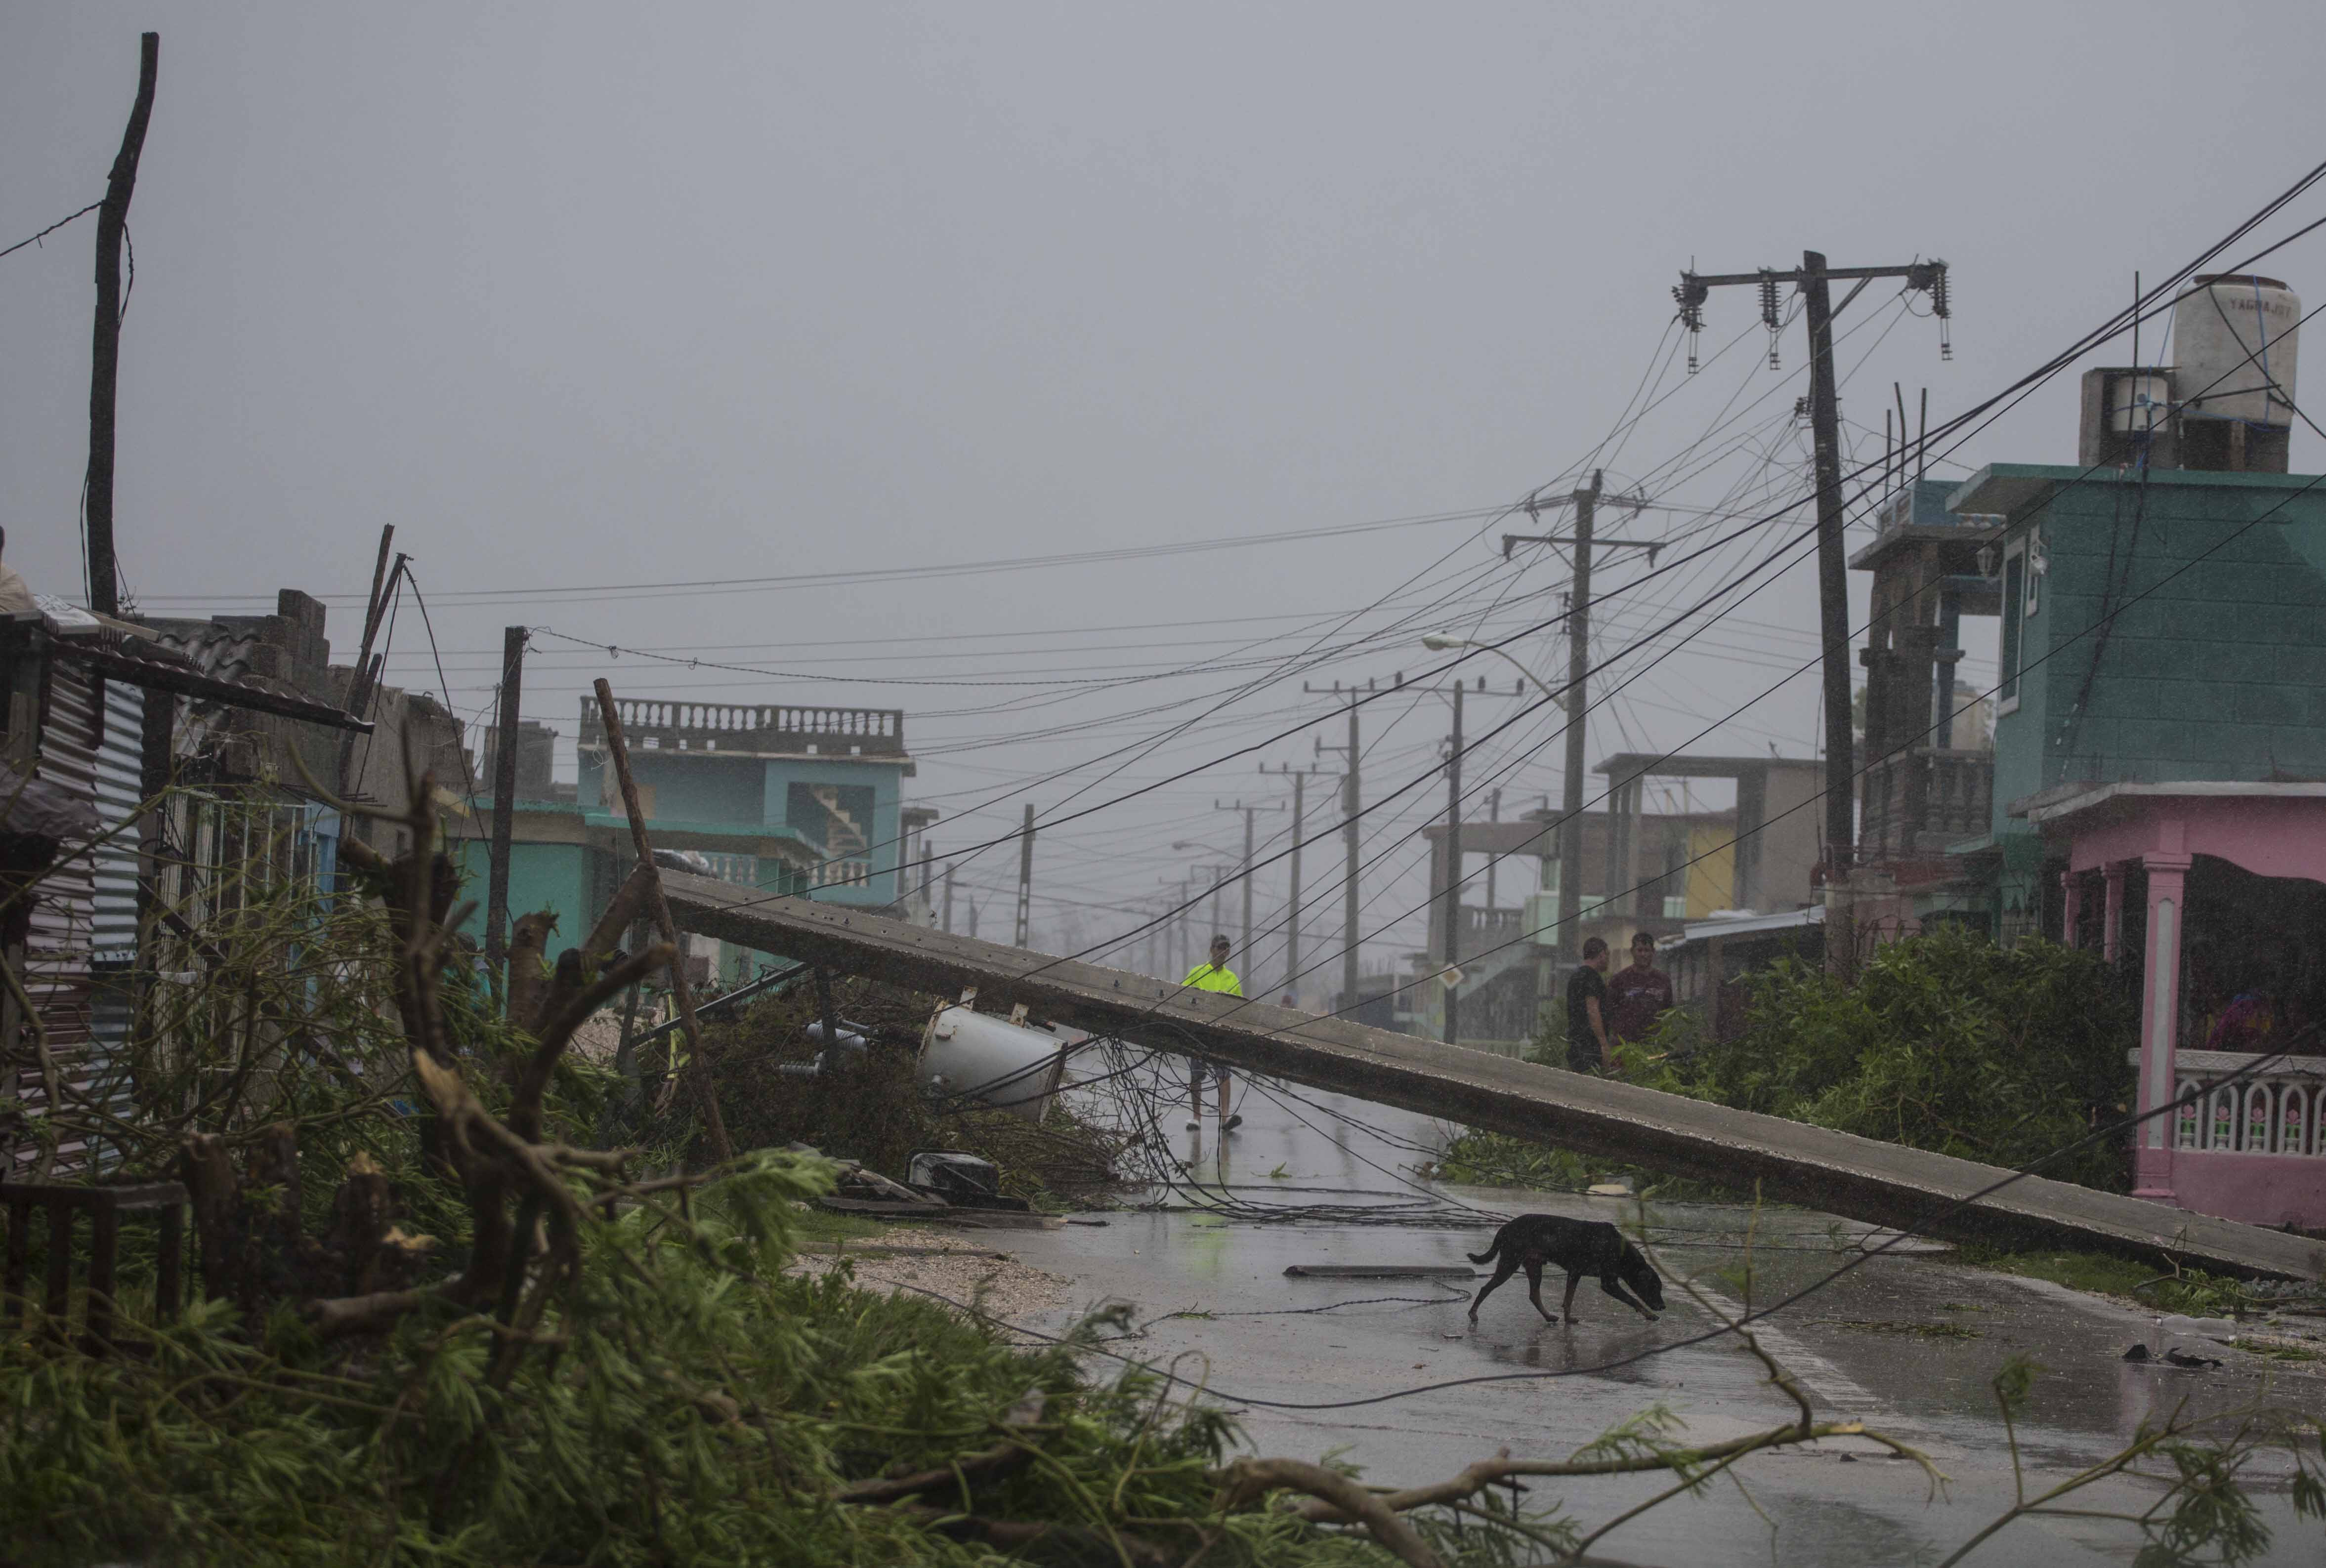 "<div class=""meta image-caption""><div class=""origin-logo origin-image none""><span>none</span></div><span class=""caption-text"">Residents venture out to find downed power lines and trees uprooted by Hurricane Irma, in Caibarien, Cuba, Saturday, Sept. 9, 2017. (Desmond Boylan/AP Photo)</span></div>"